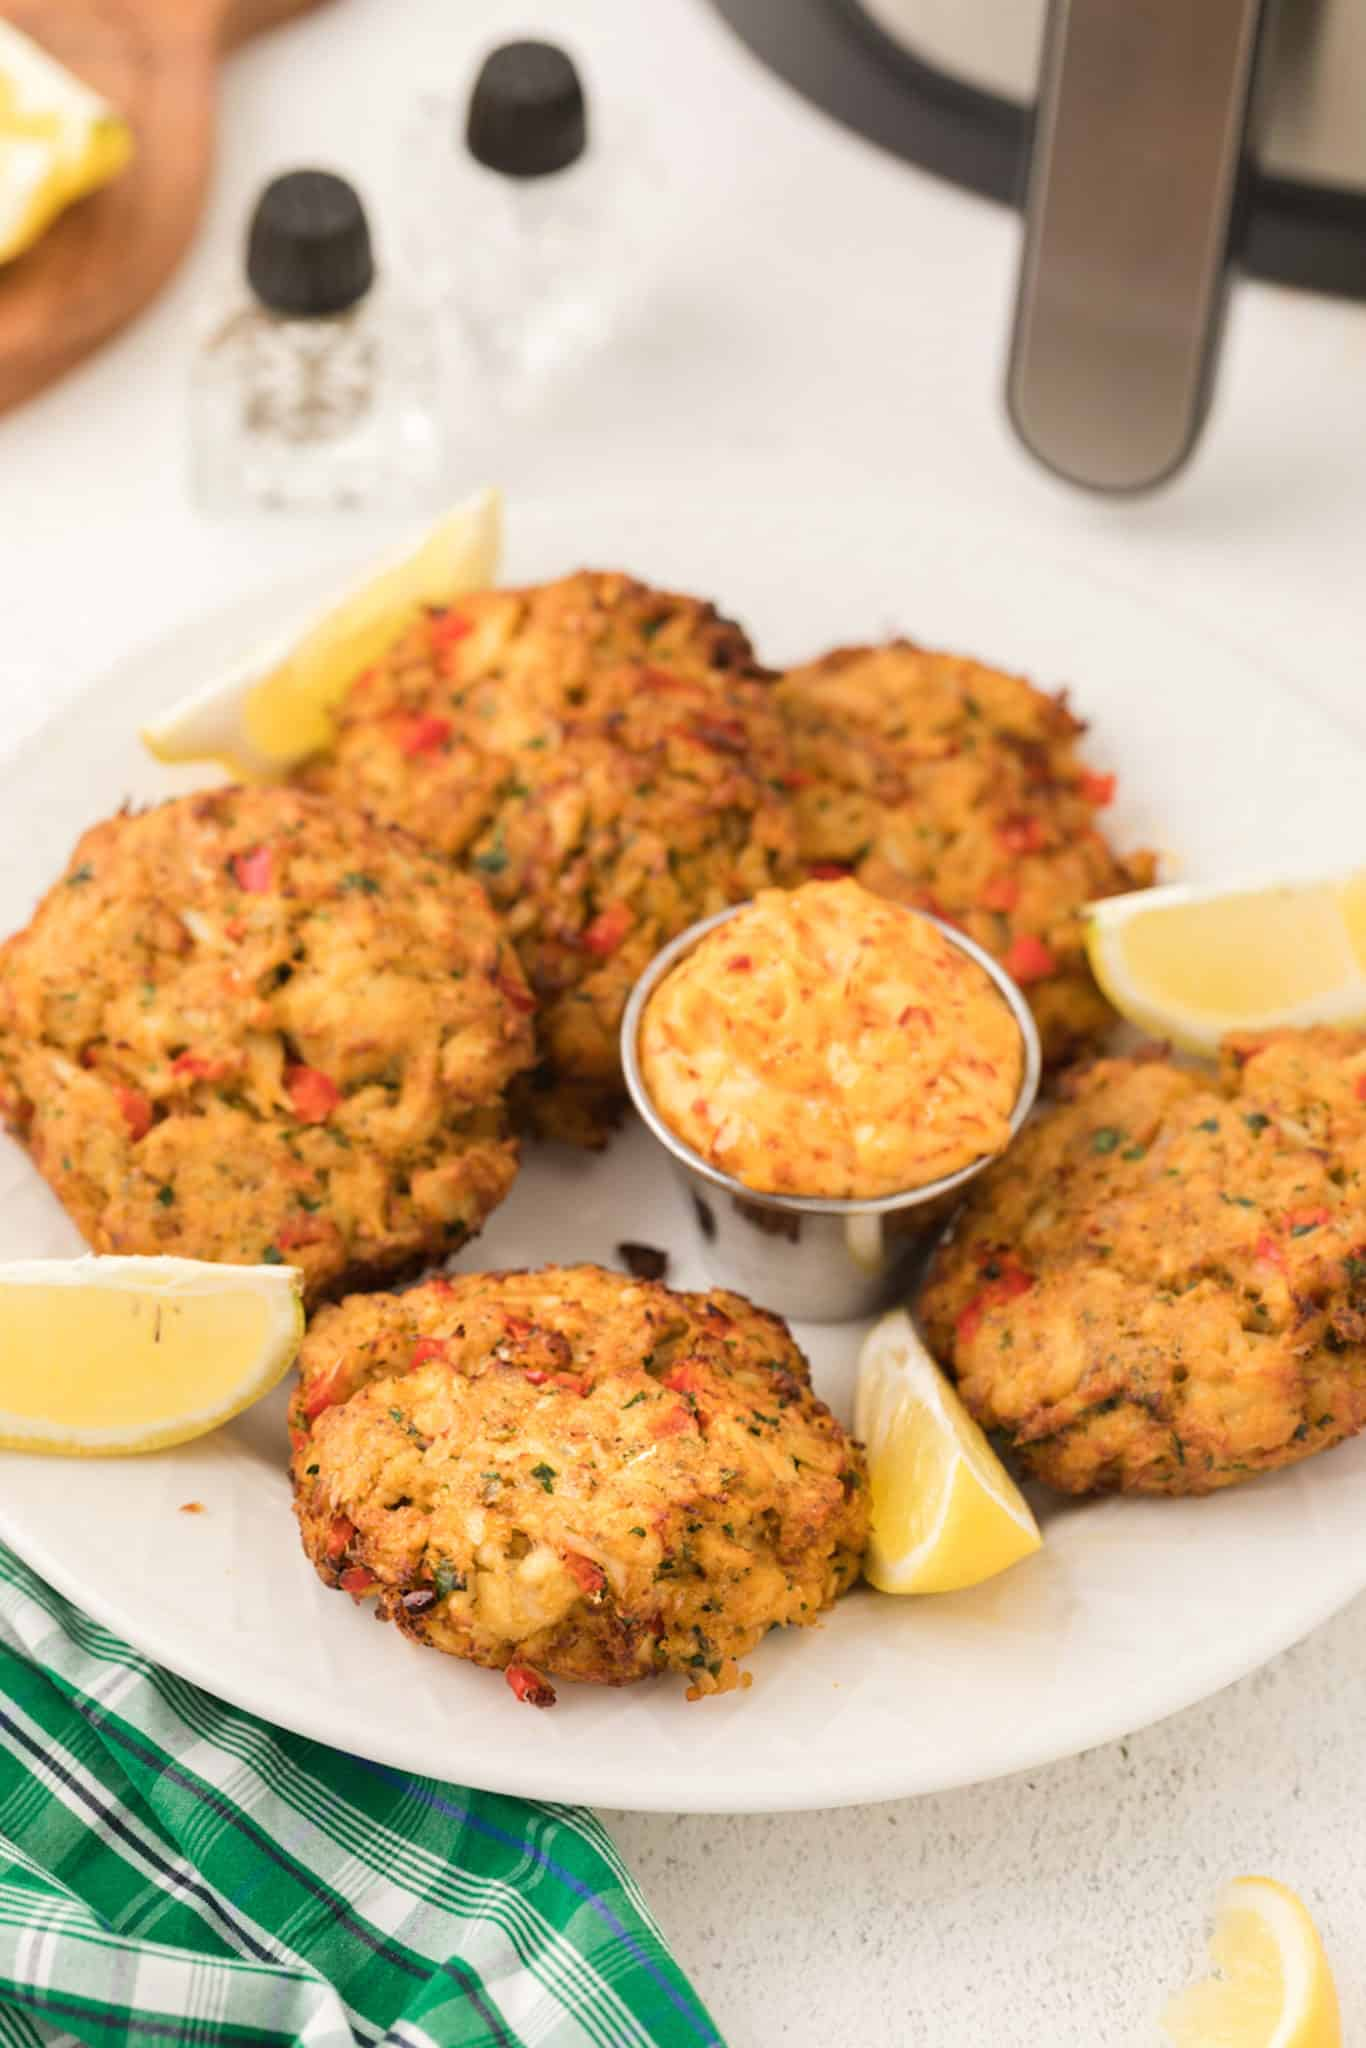 serving plate with crab cakes, lemon slices, and dipping sauce